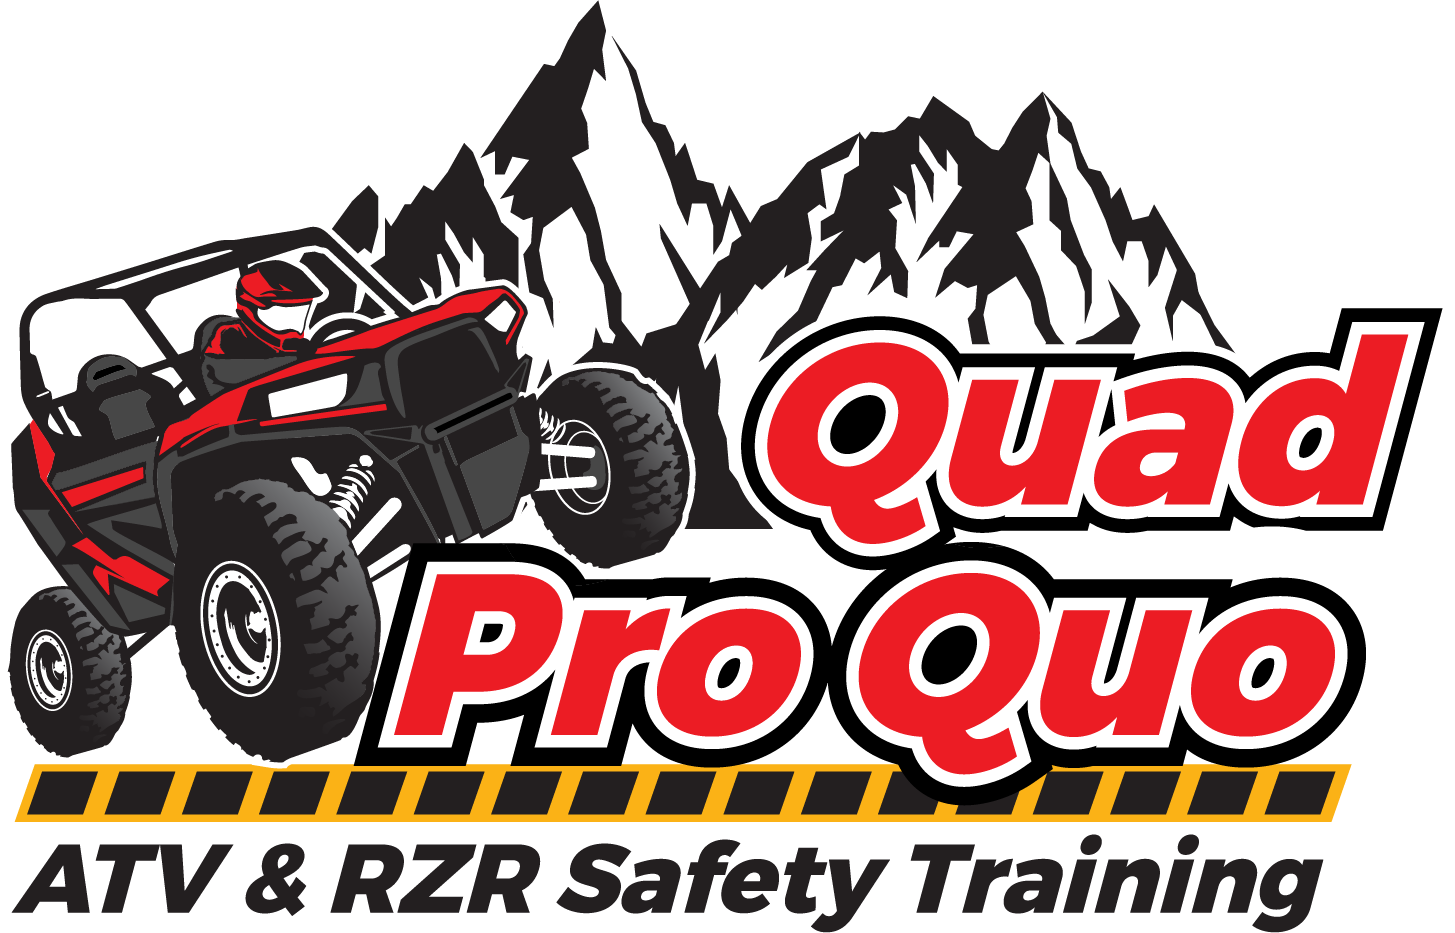 A logo showing a RZR or ATV climbing over the name, plus a safety element.  The name of the business is Quad-Pro-Quo